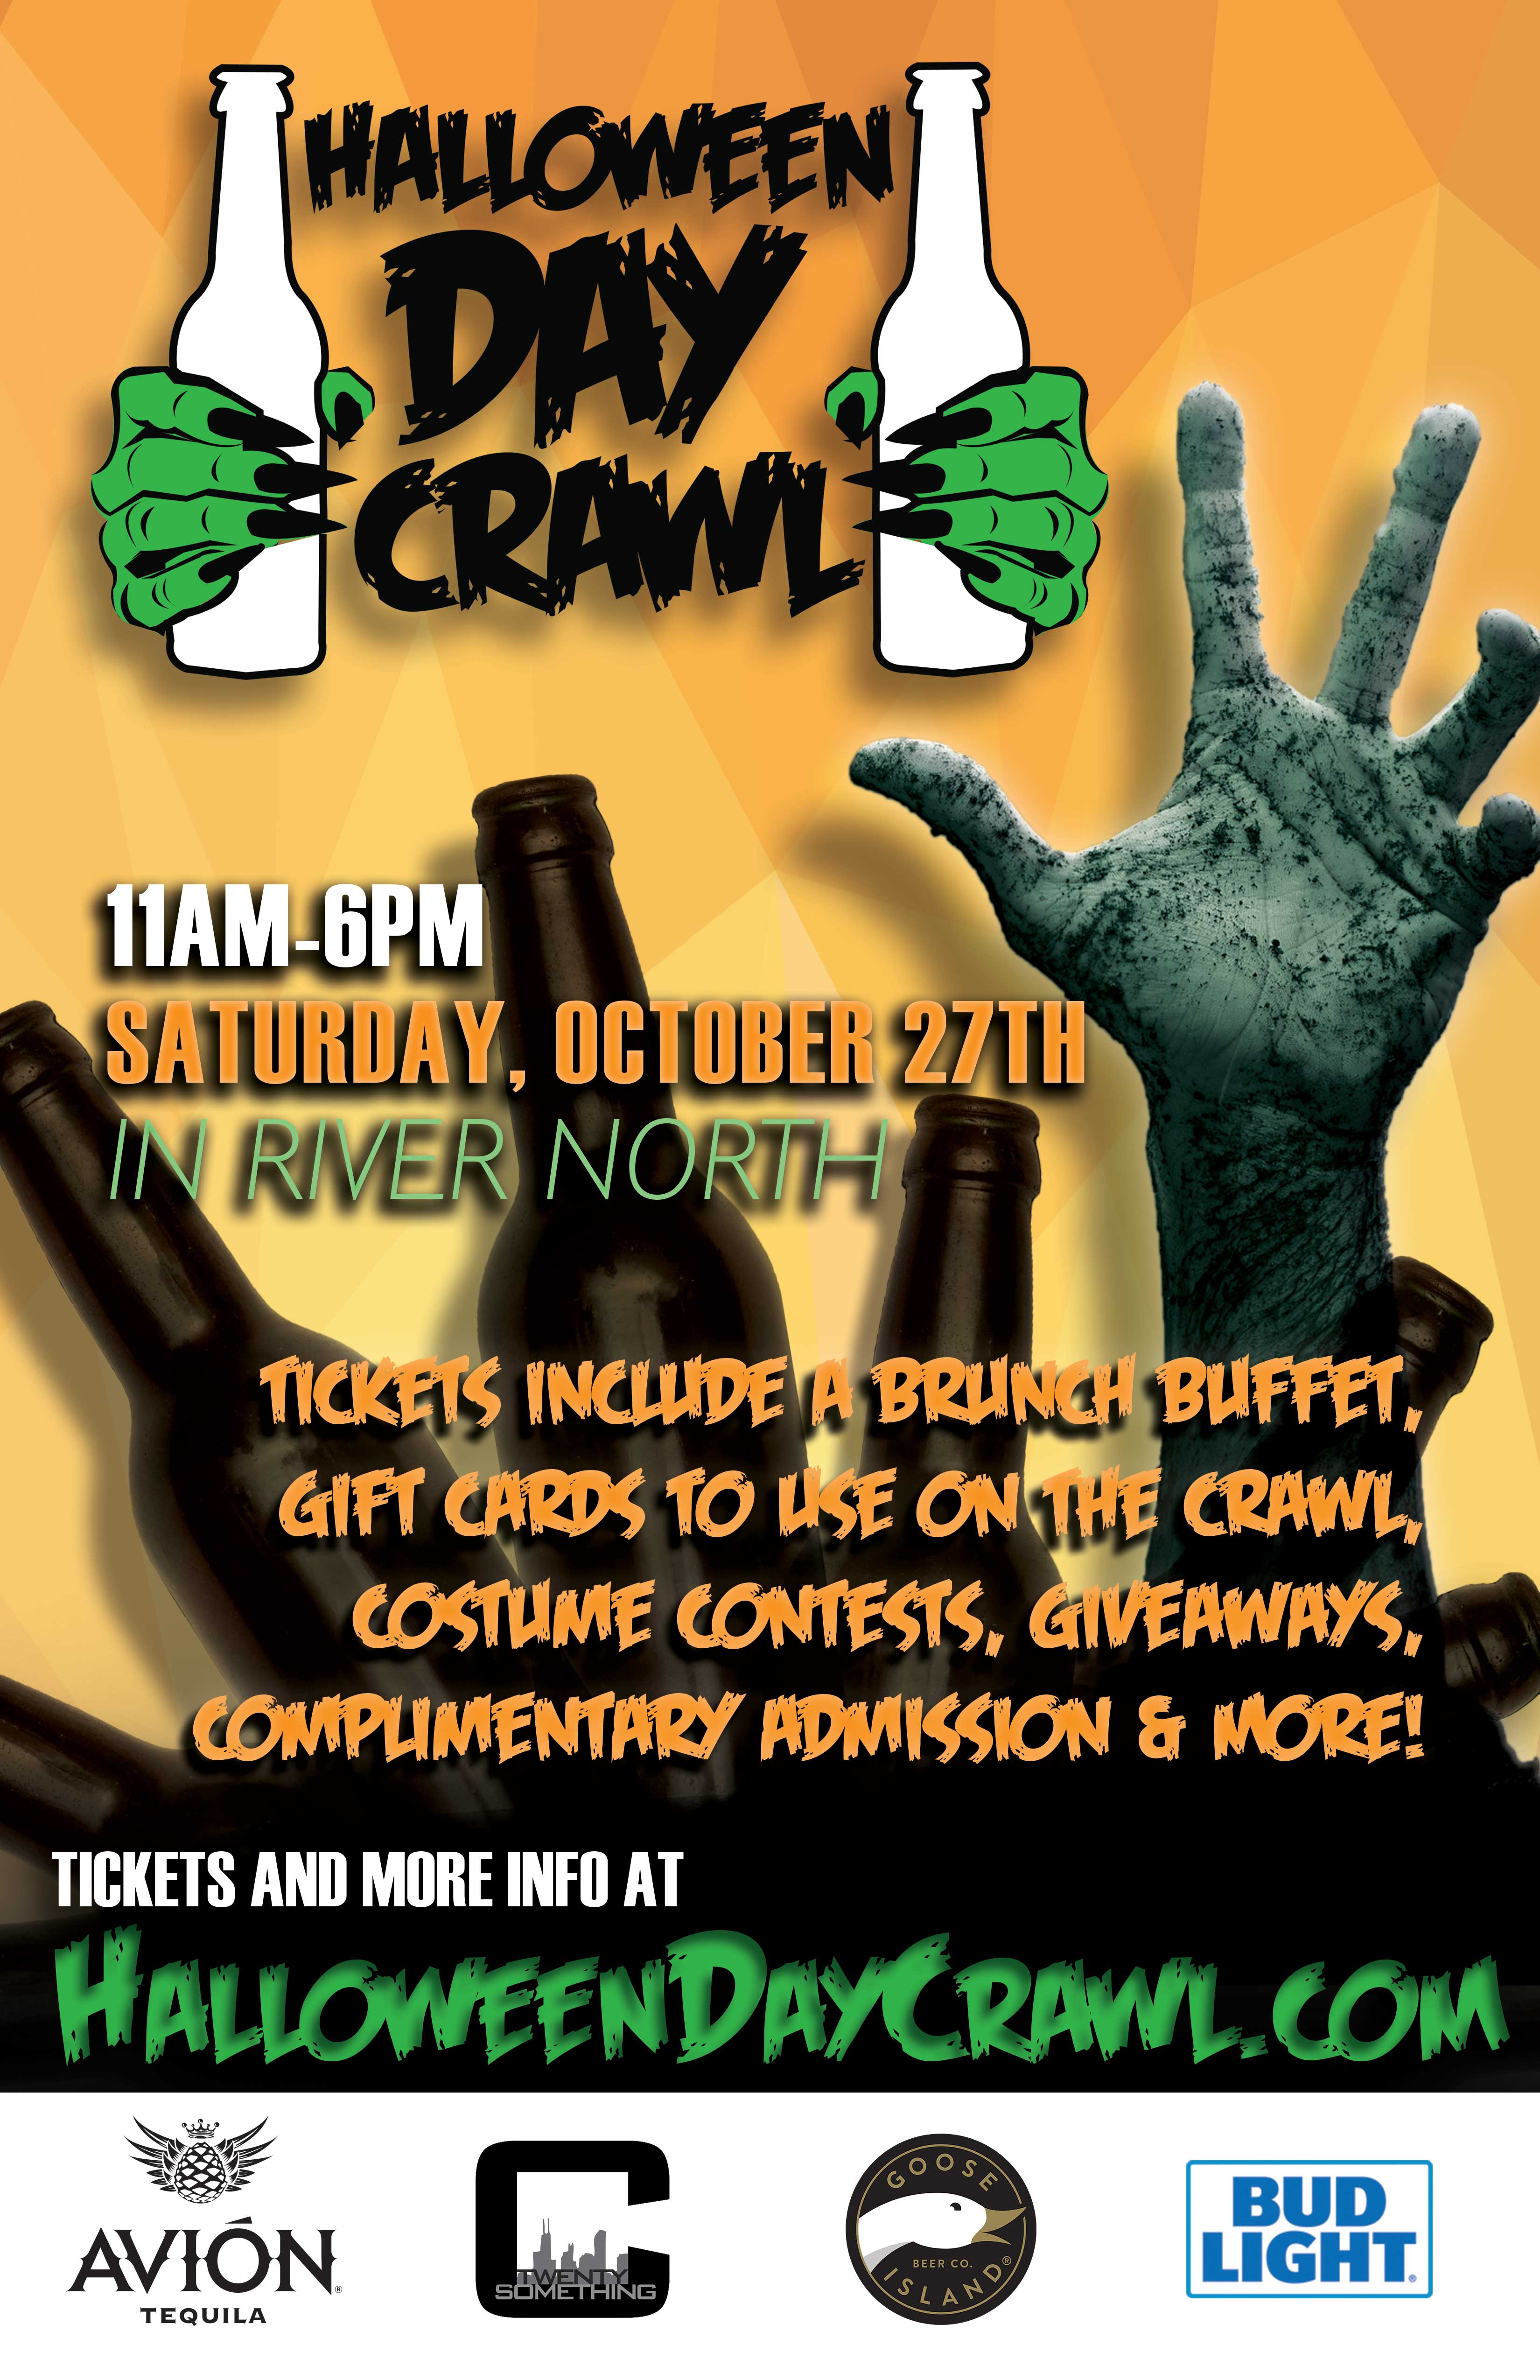 Halloween Day Bar Crawl in Chicago - Tickets include a brunch buffet, gift cards to use on the crawl, costume contests, giveaways, complimentary admission to all bars during their scheduled times & MORE!